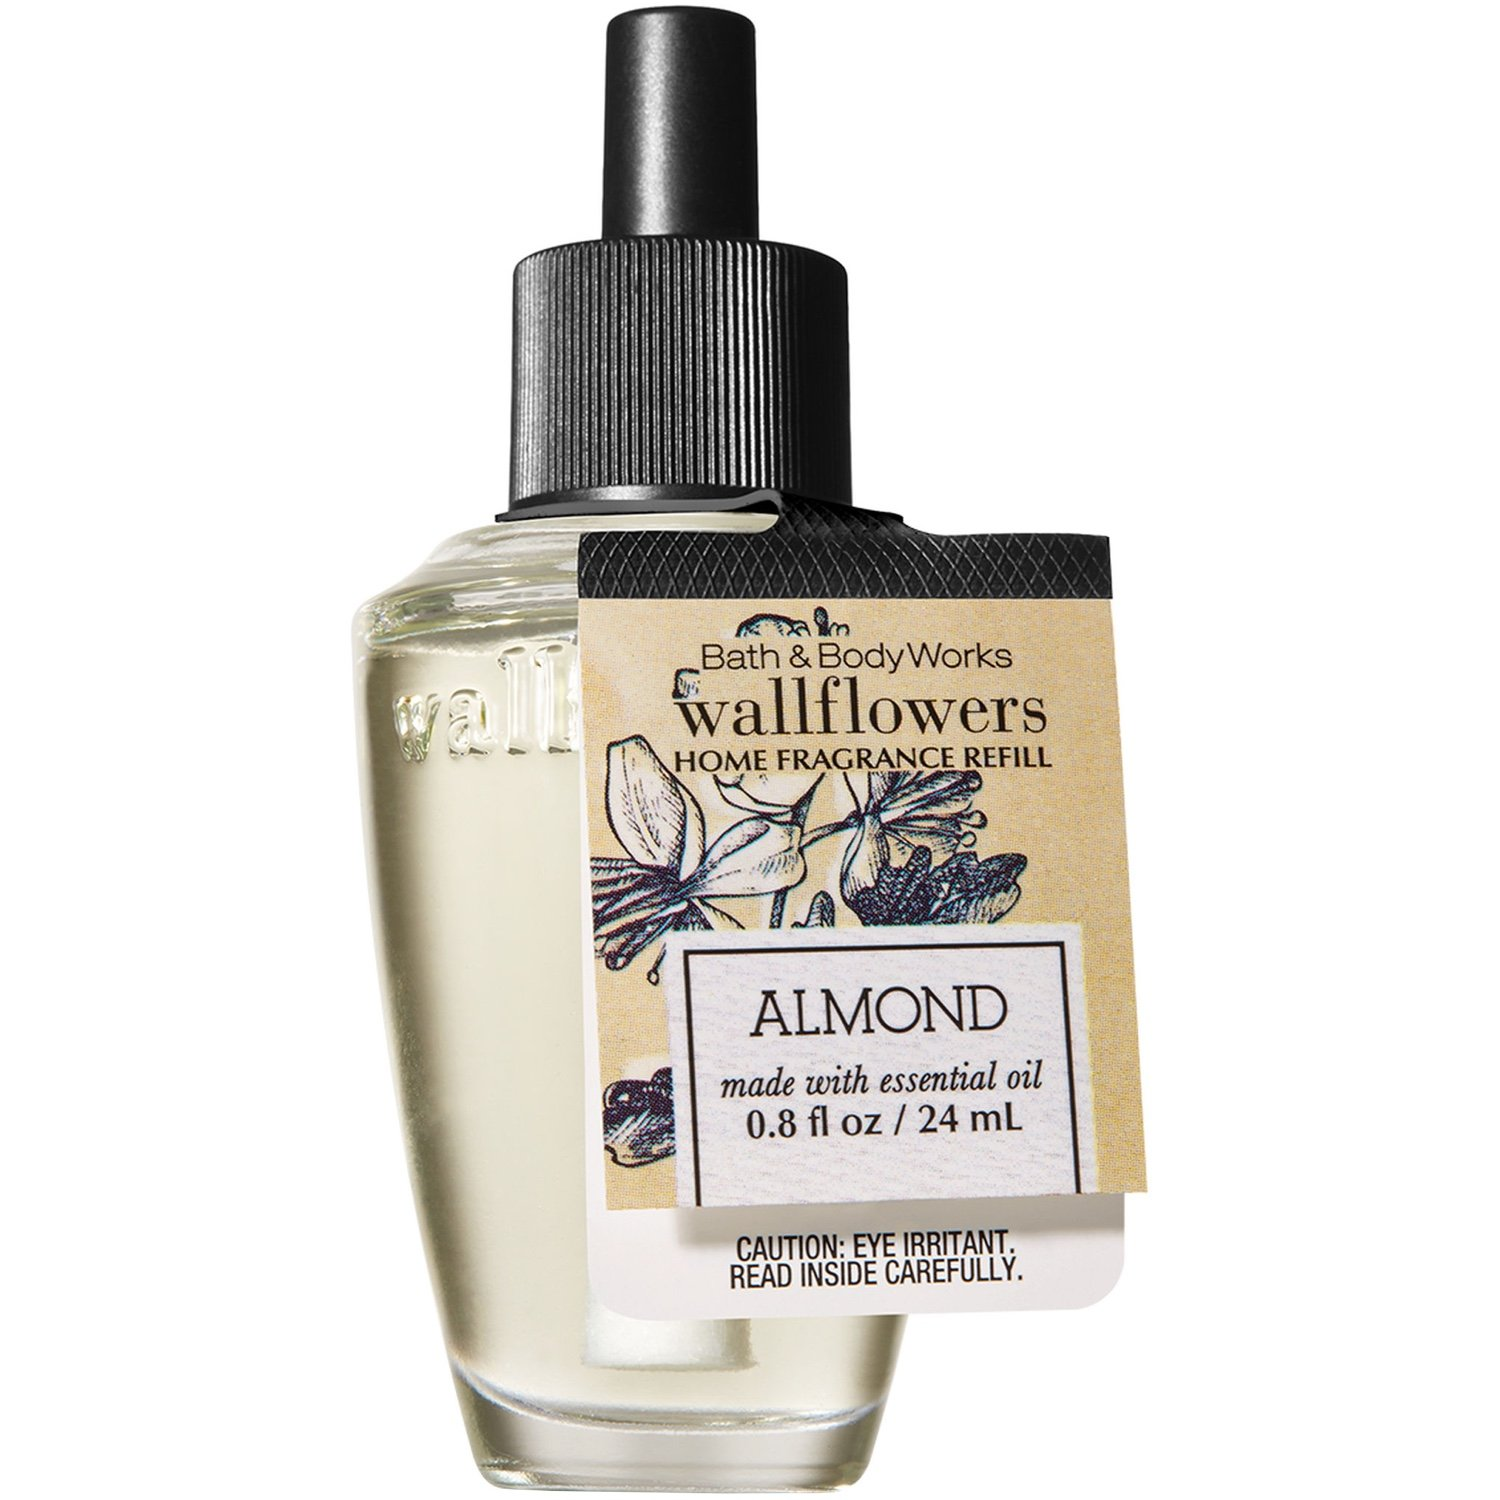 Bath and Body Works Wallflowers Fragrance Refill Made with Essential Oils (Almond)